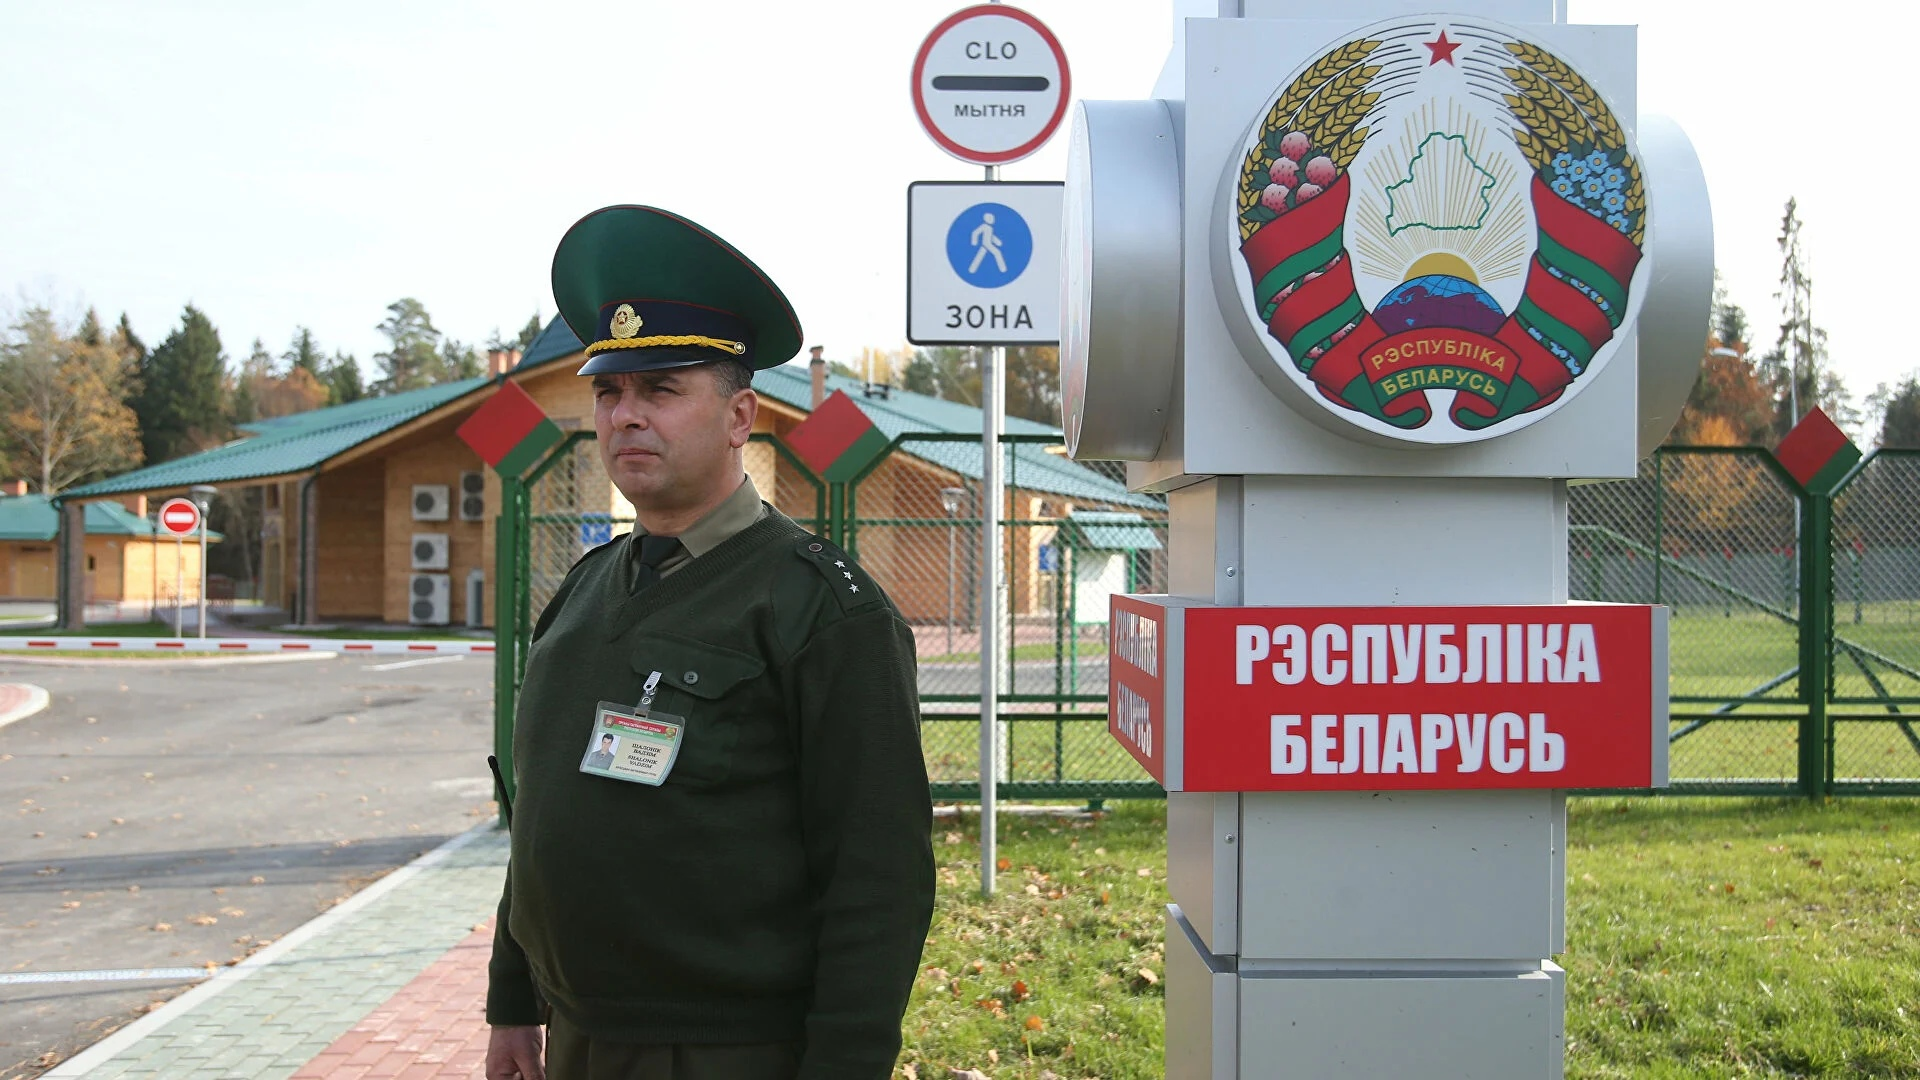 Belarus has tightened its border with Poland